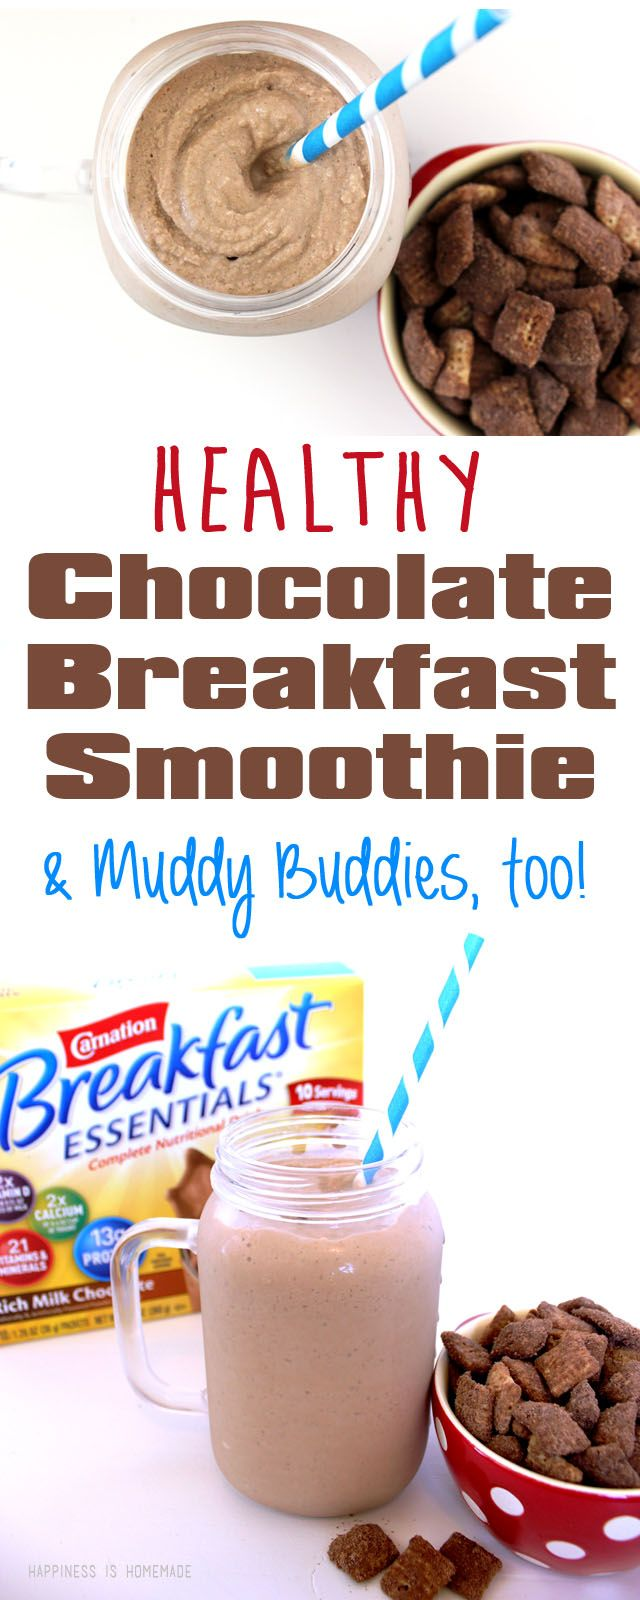 Healthy Chocolate Breakfast Smoothie (with hidden greens!) and Muddy Buddies mix, too! Yum! #BreakfastEssentials #pmedia #ad